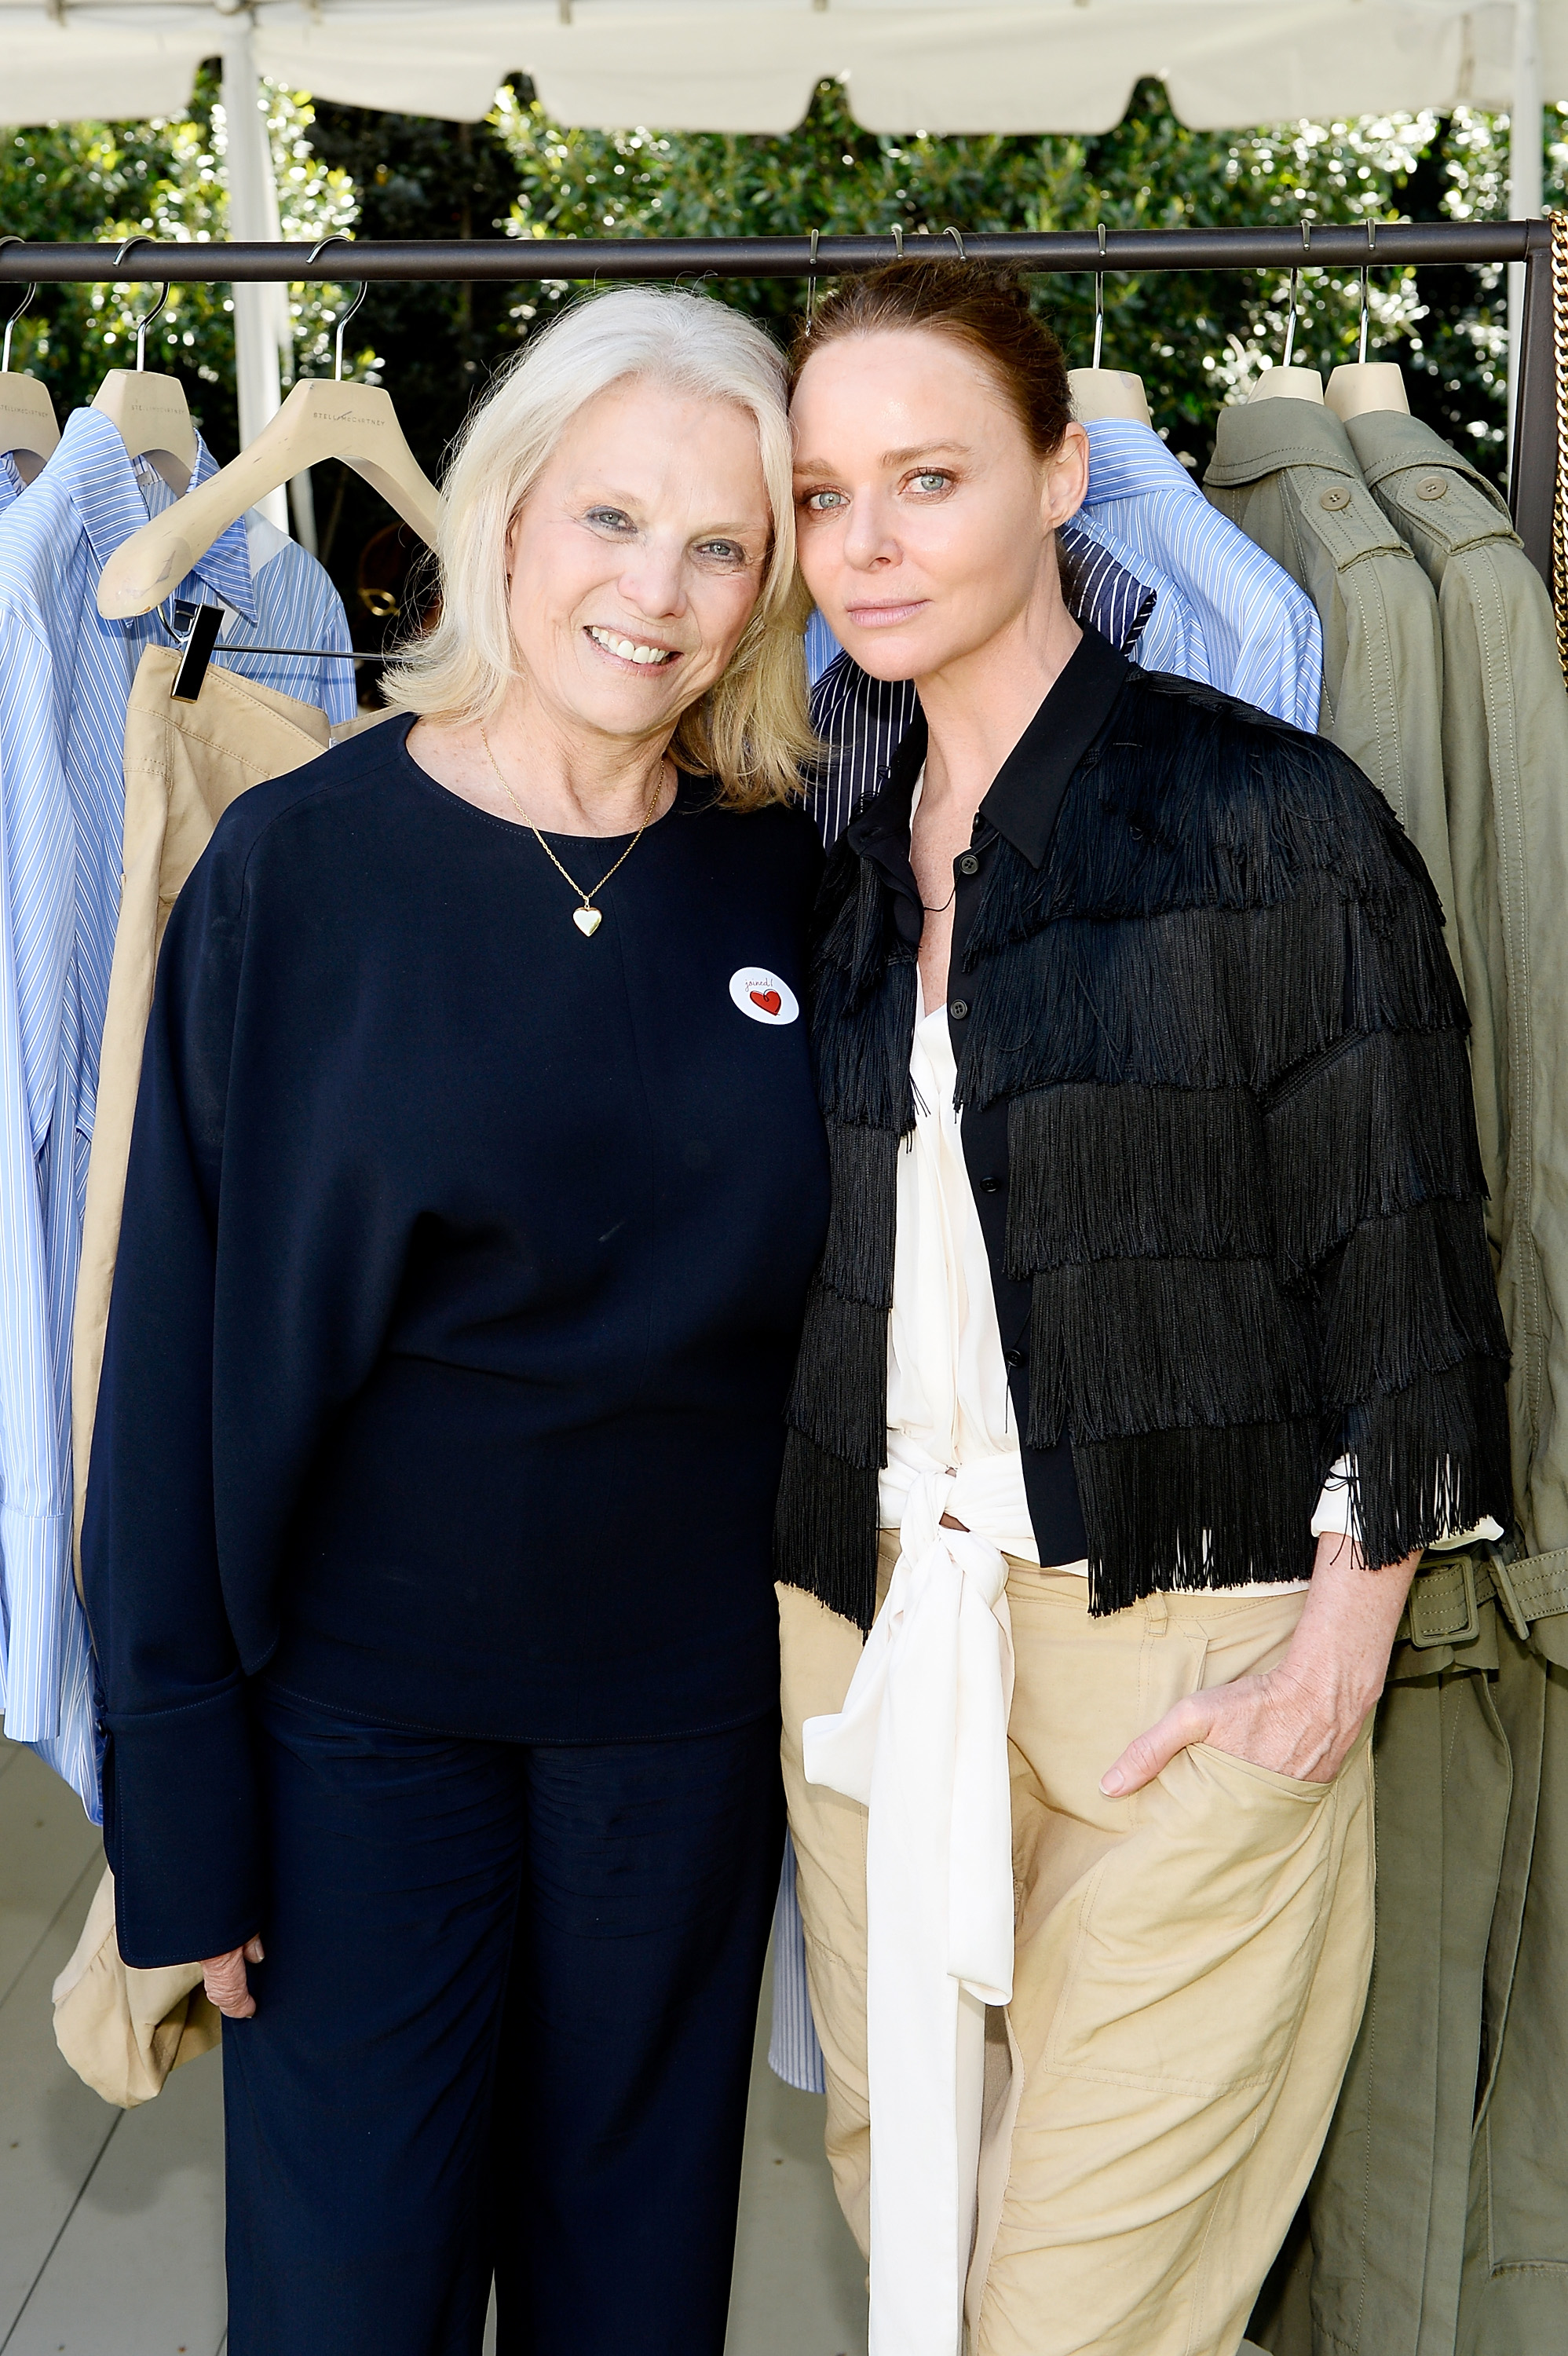 Astrid Heger and Stella McCartney attend the annual H.E.A.R.T. Brunch featuring Stella McCartney on April 18, 2017 in Los Angeles, California. (Photo by Stefanie Keenan/Getty Images for Stella McCartney)